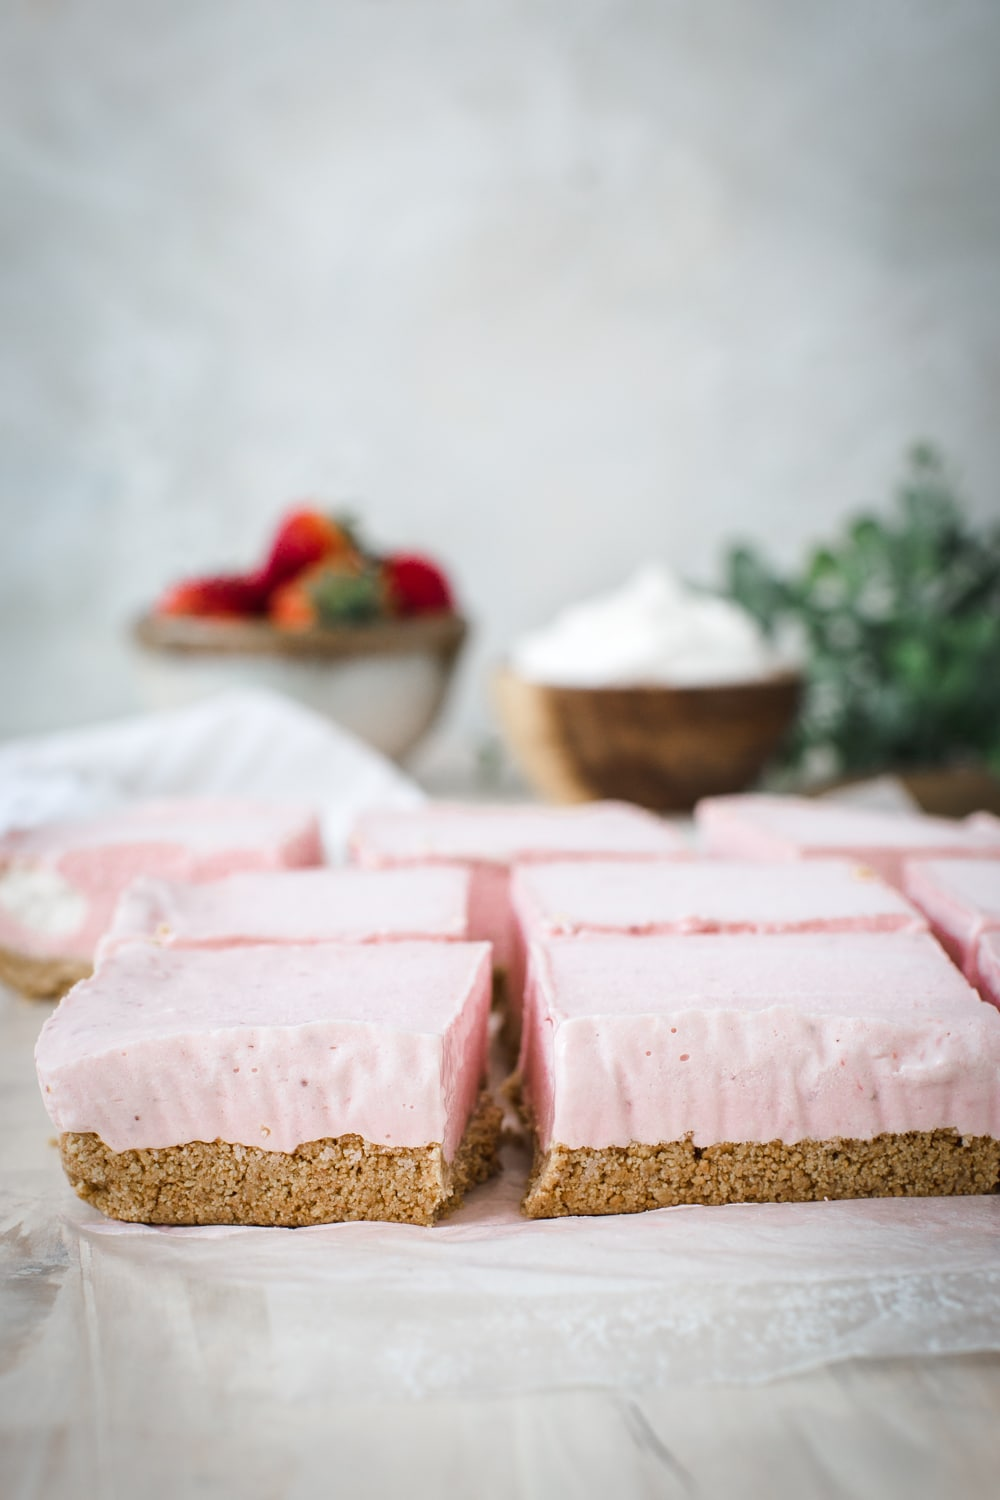 strawberry cheesecake sliced into squares on parchment paper